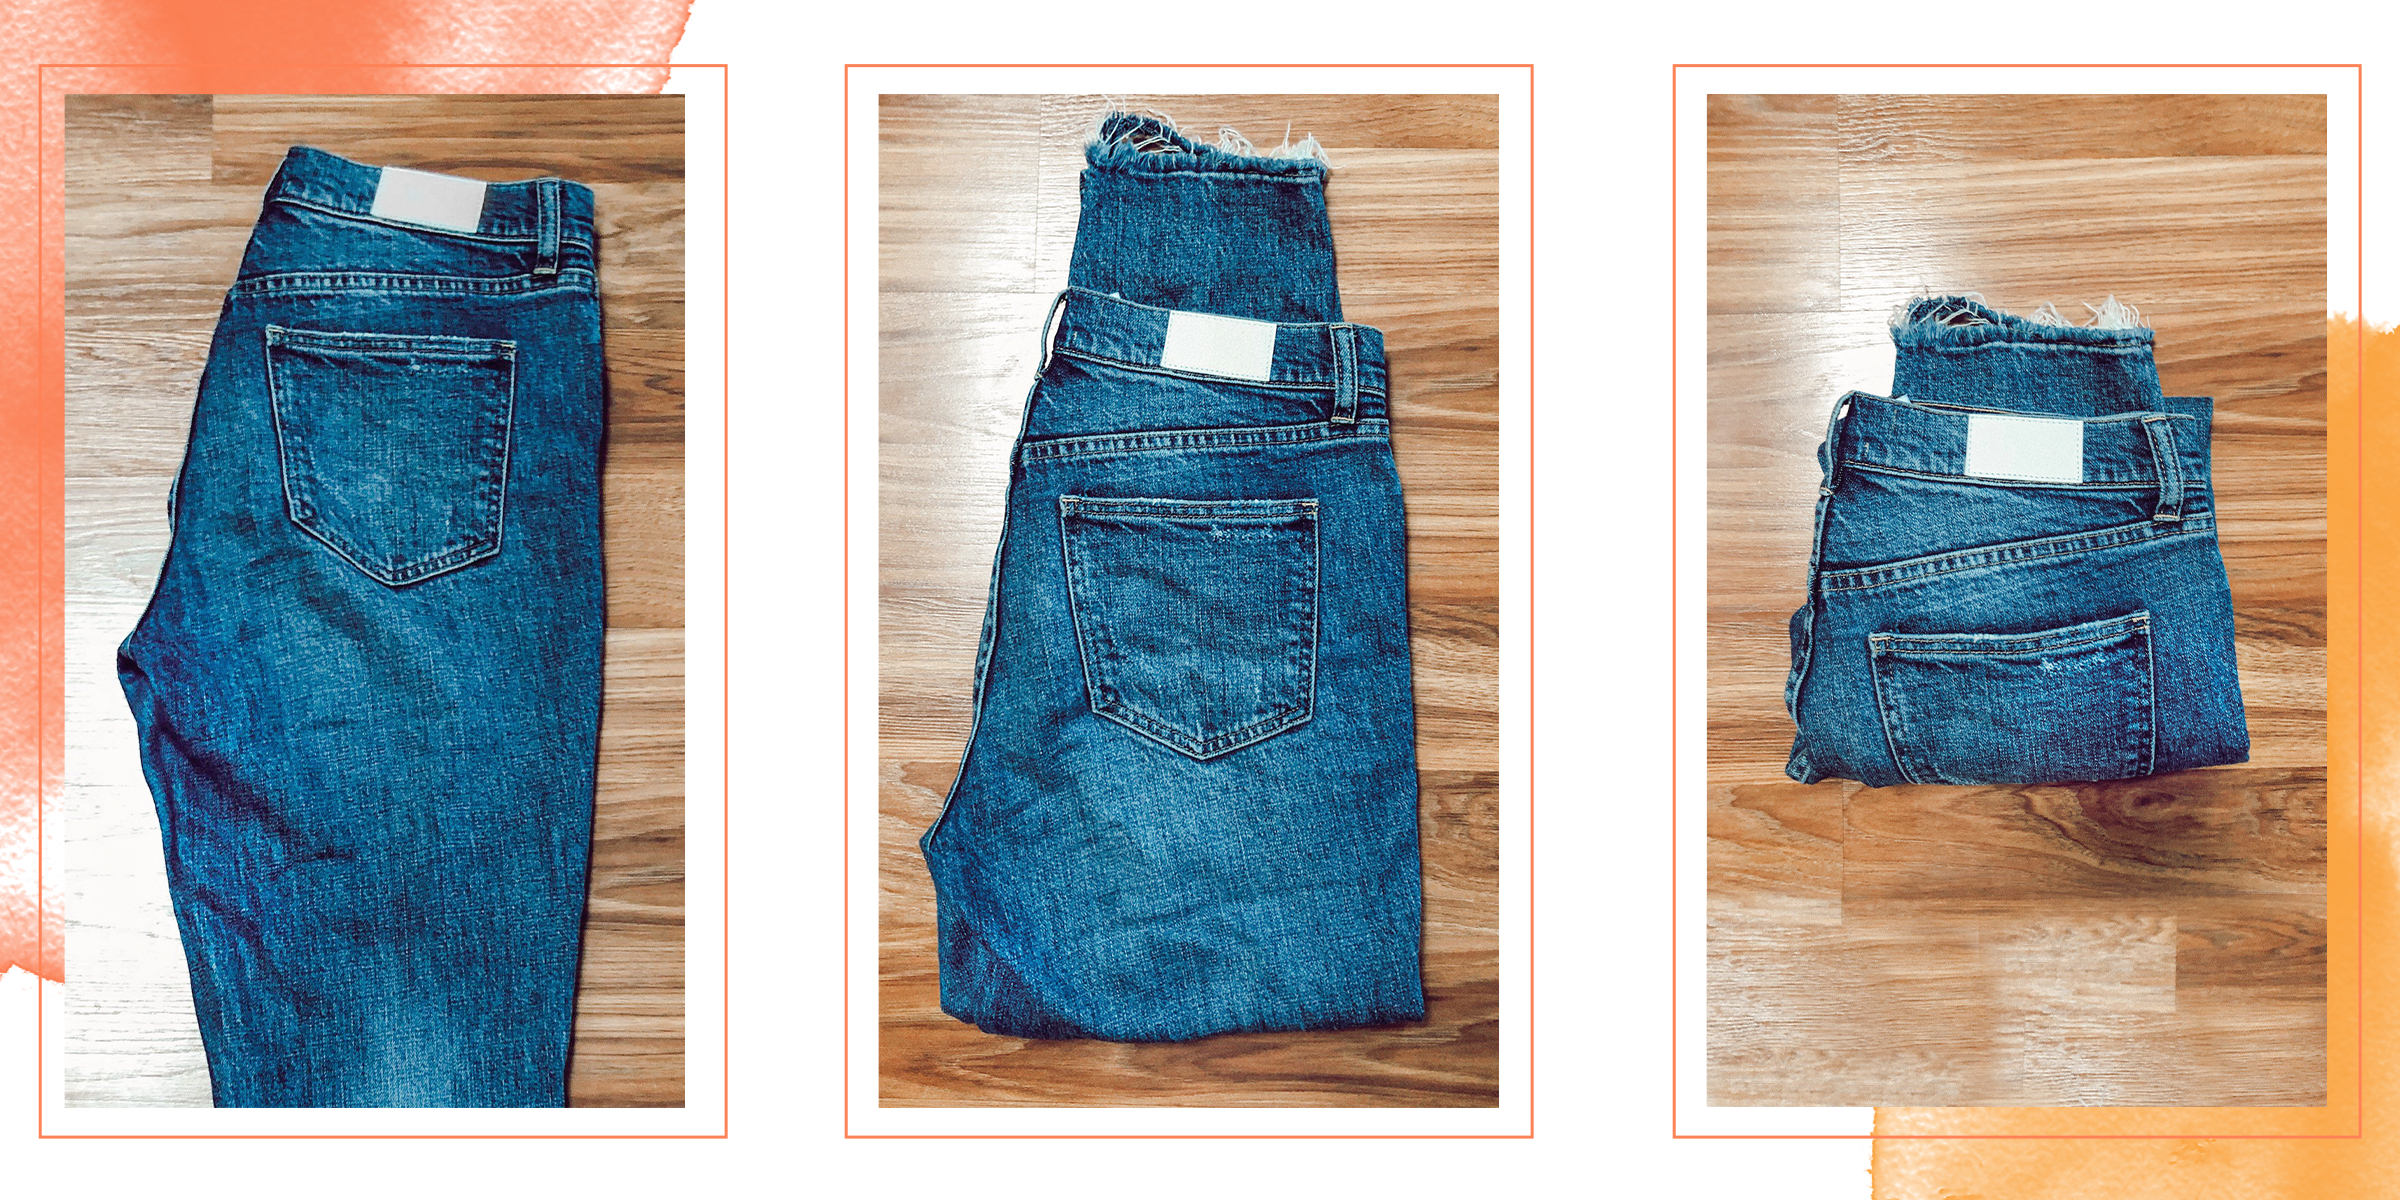 really let that denim collection shine by showcasing pocket and hem details.